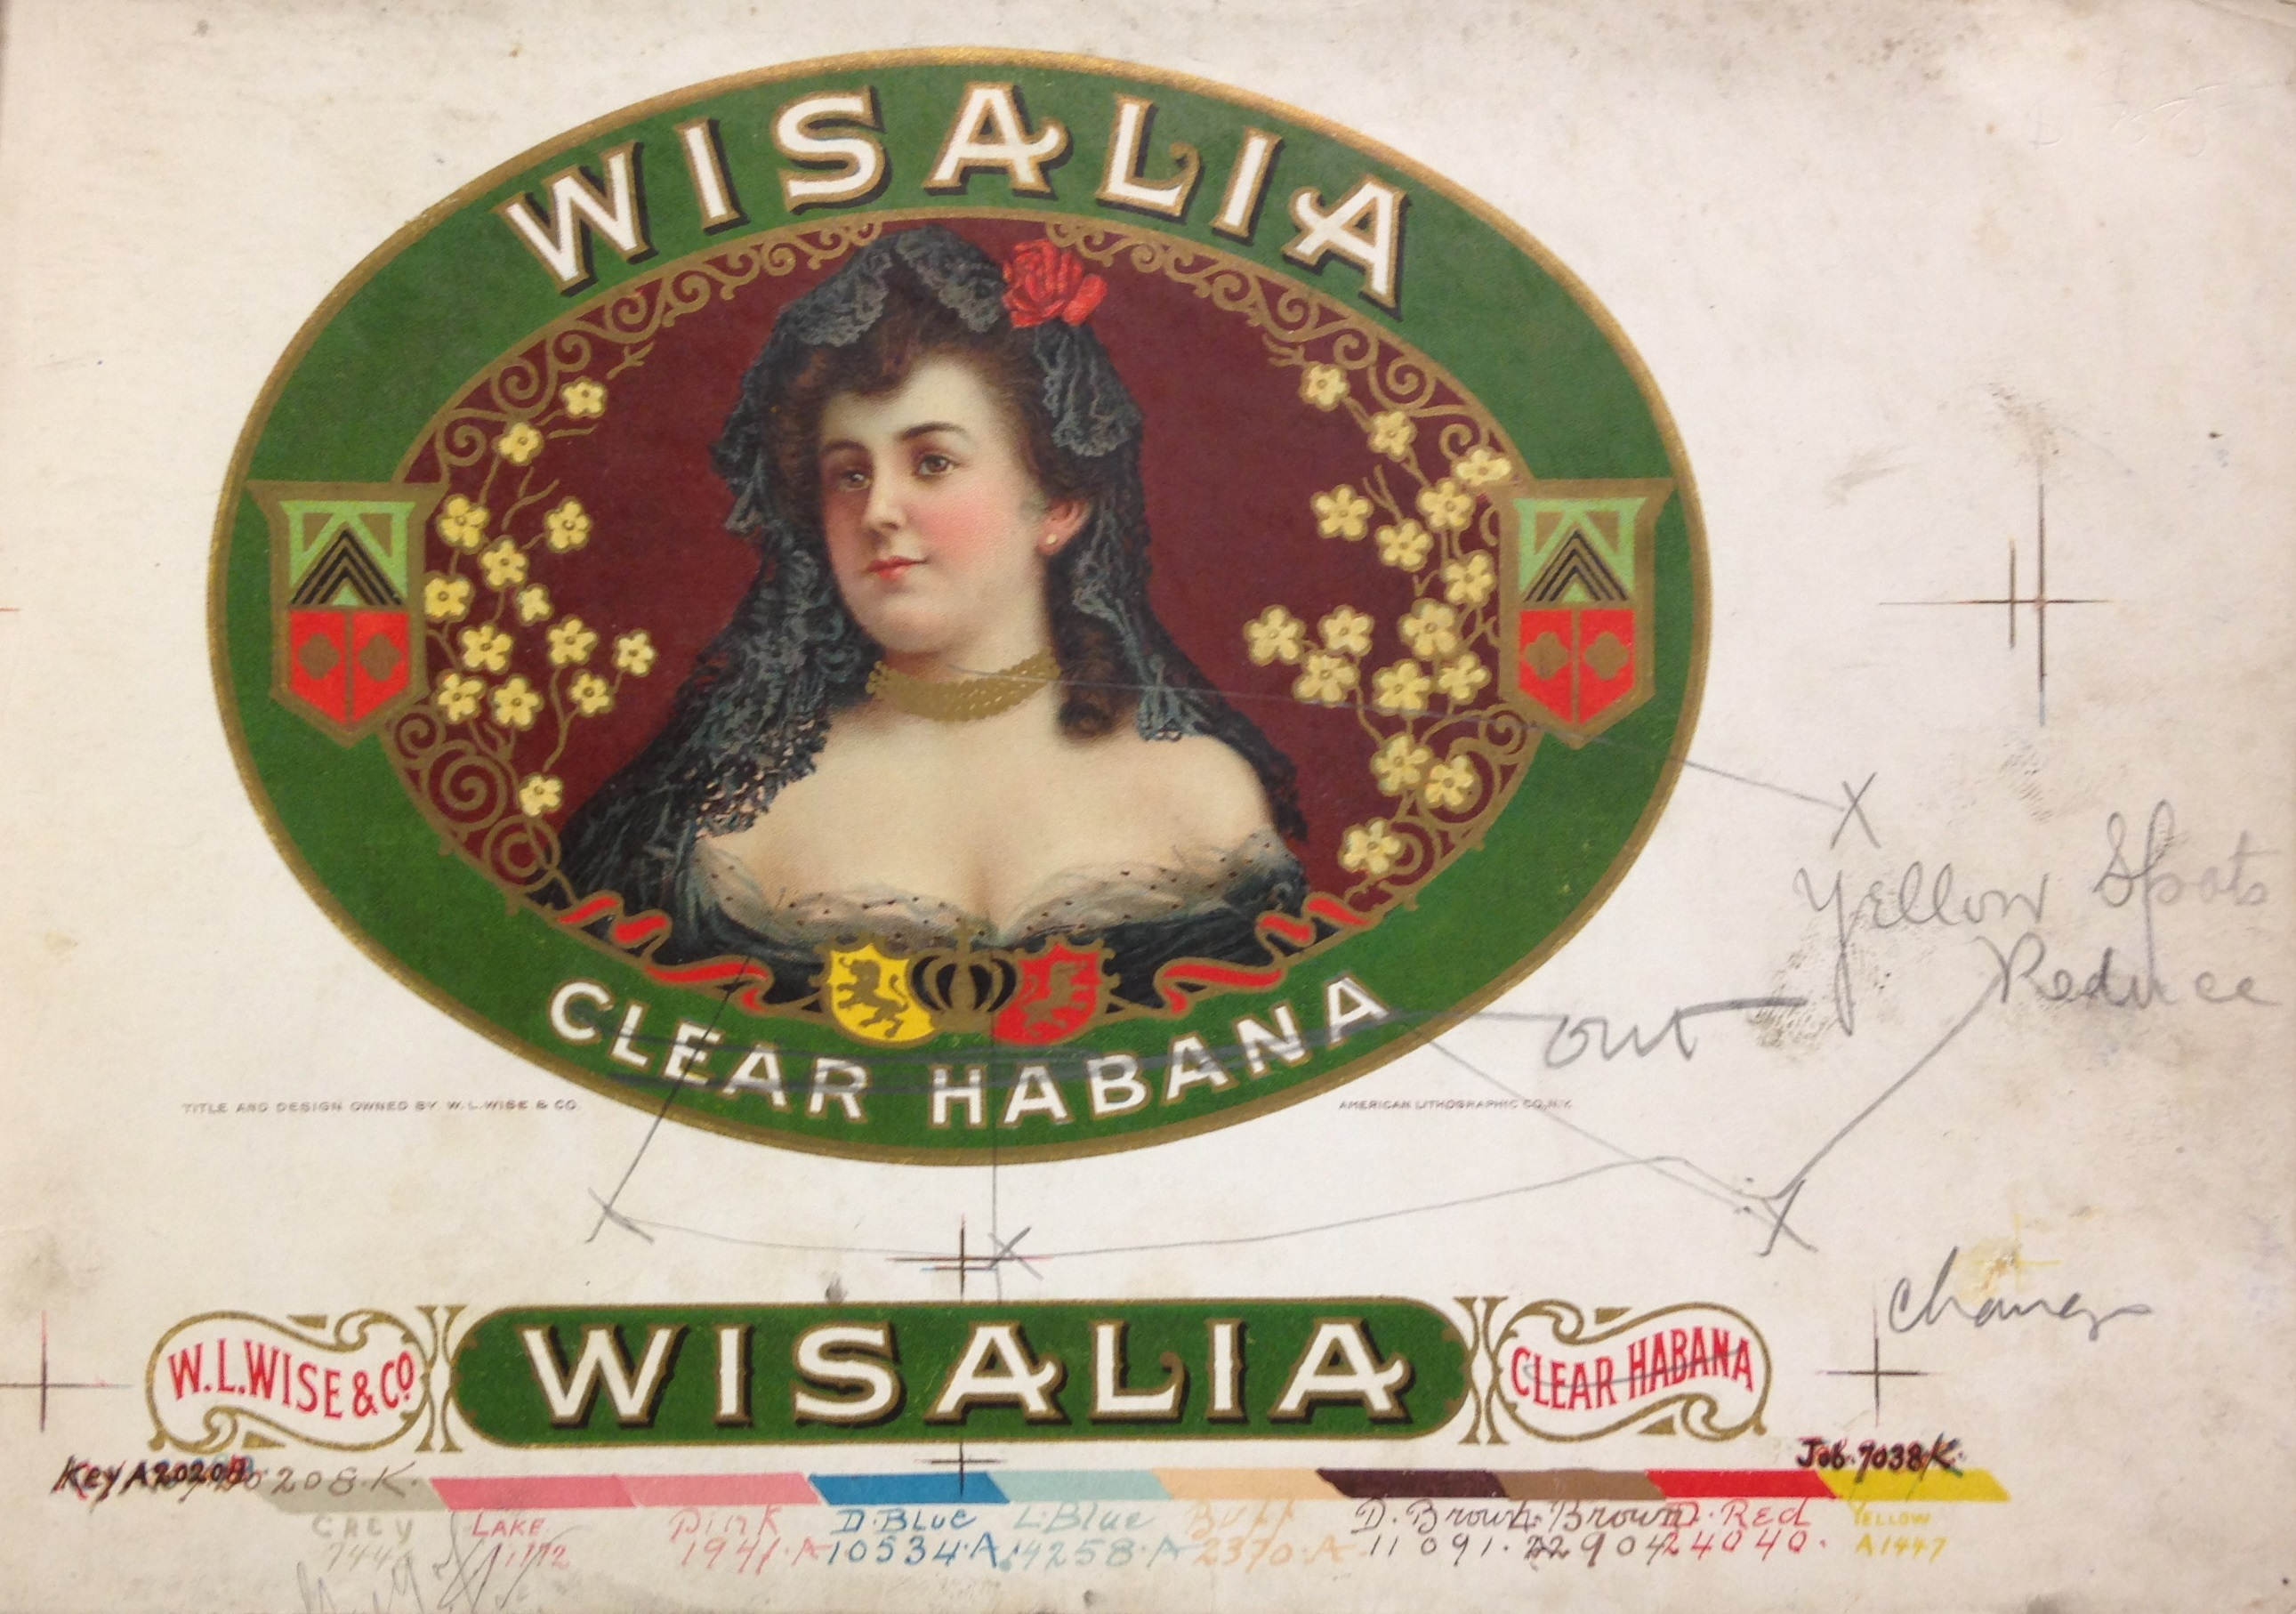 Proof of a 10-color chromolithographed cigar box label, marked up for correction (NE2515 .A54 1900)